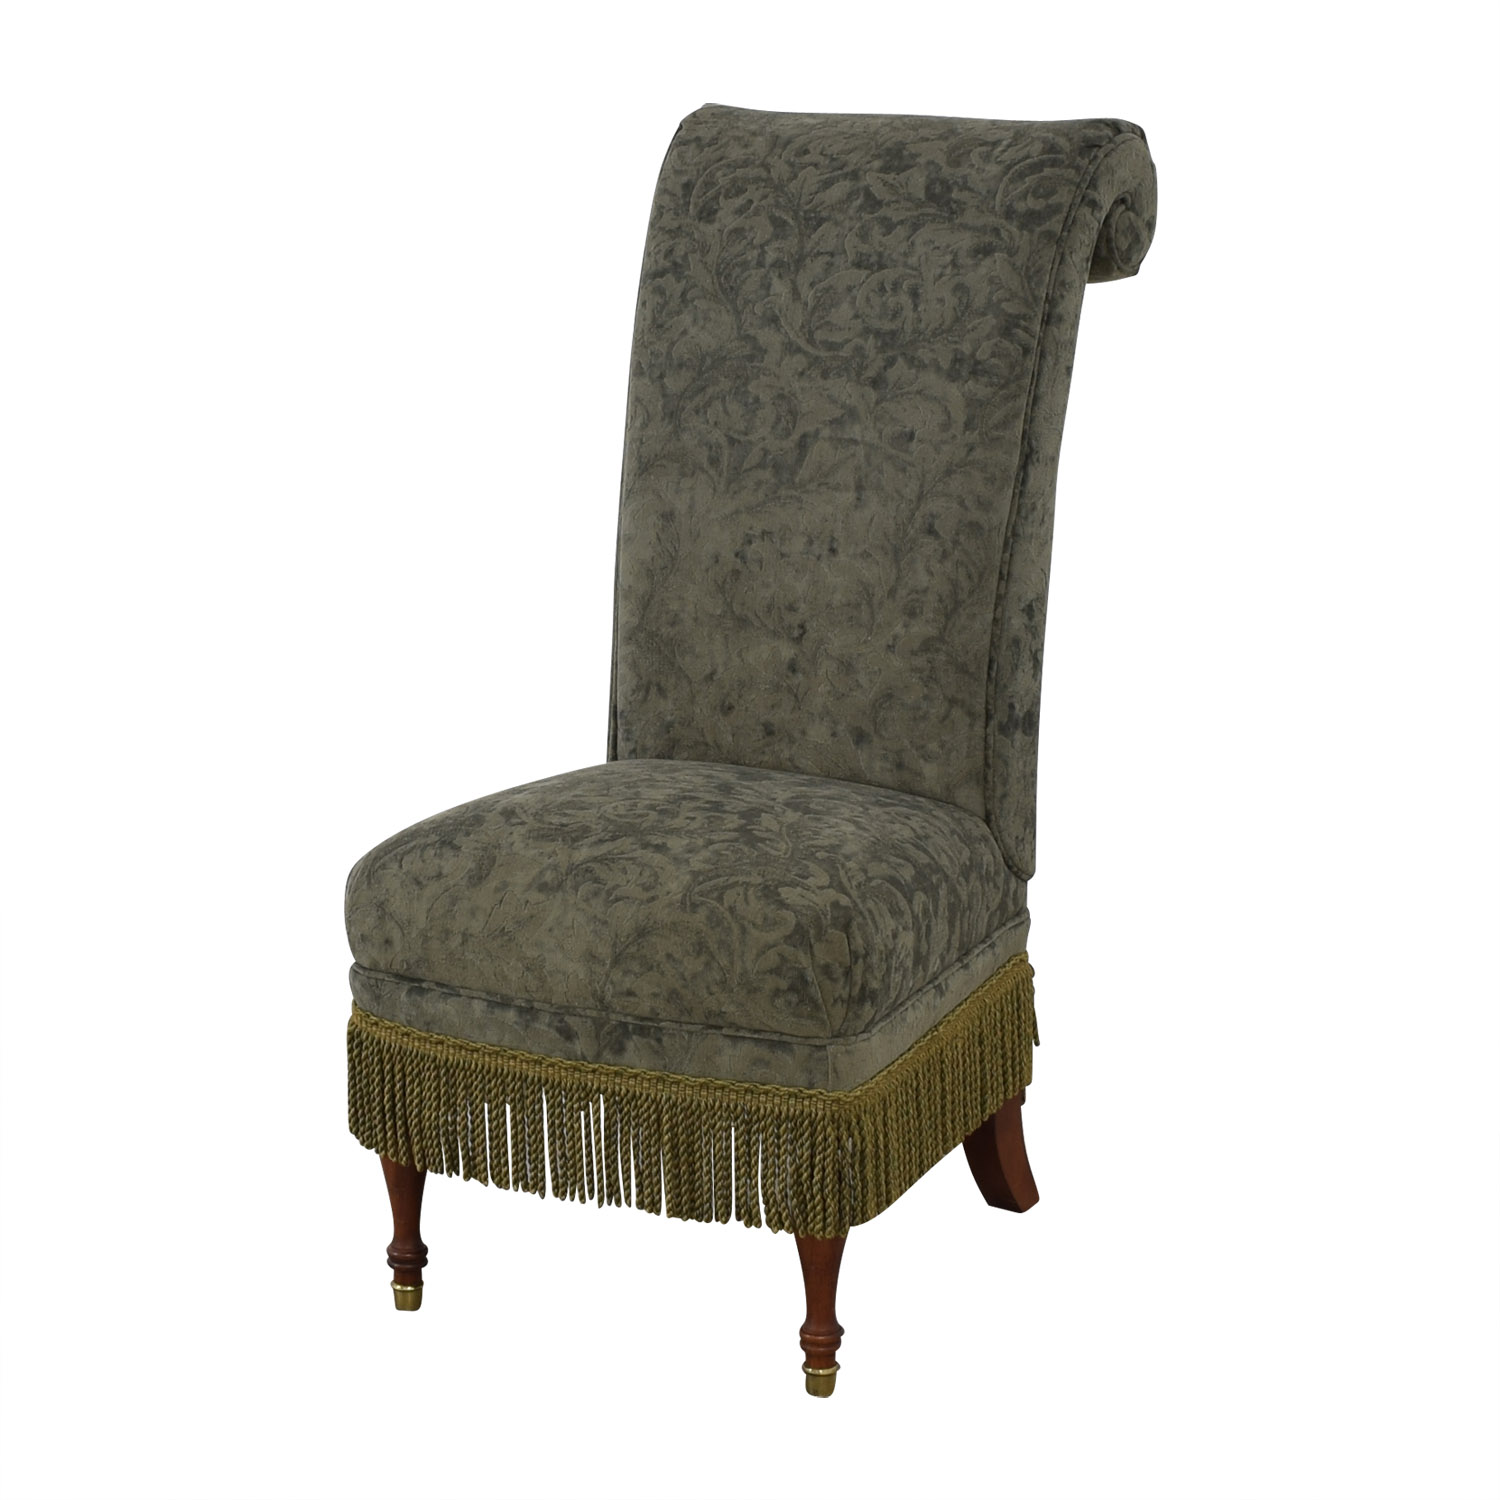 Drexel Heritage Drexel Heritage Dining Chairs Dining Chairs